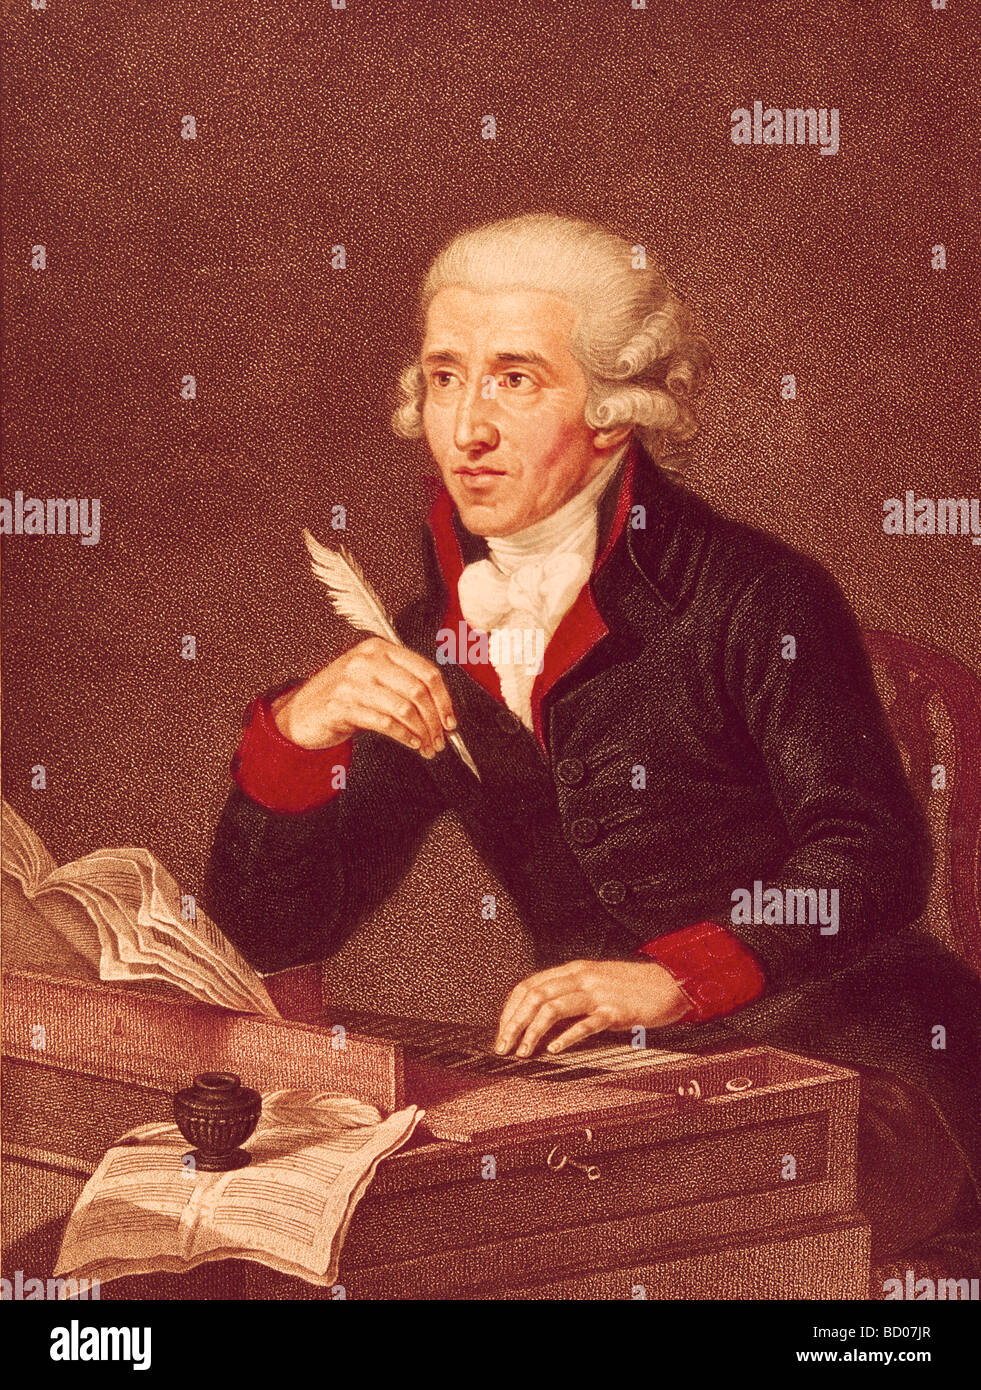 franz haydn essay Franz joseph haydn (1732-1809) was born into an ordinary austrian family haydn was blessed with an unusually long life for someone of his time, as well as the good fortune of being employed for some thirty years by the esterházy family, some of the richest musical patrons in europe.